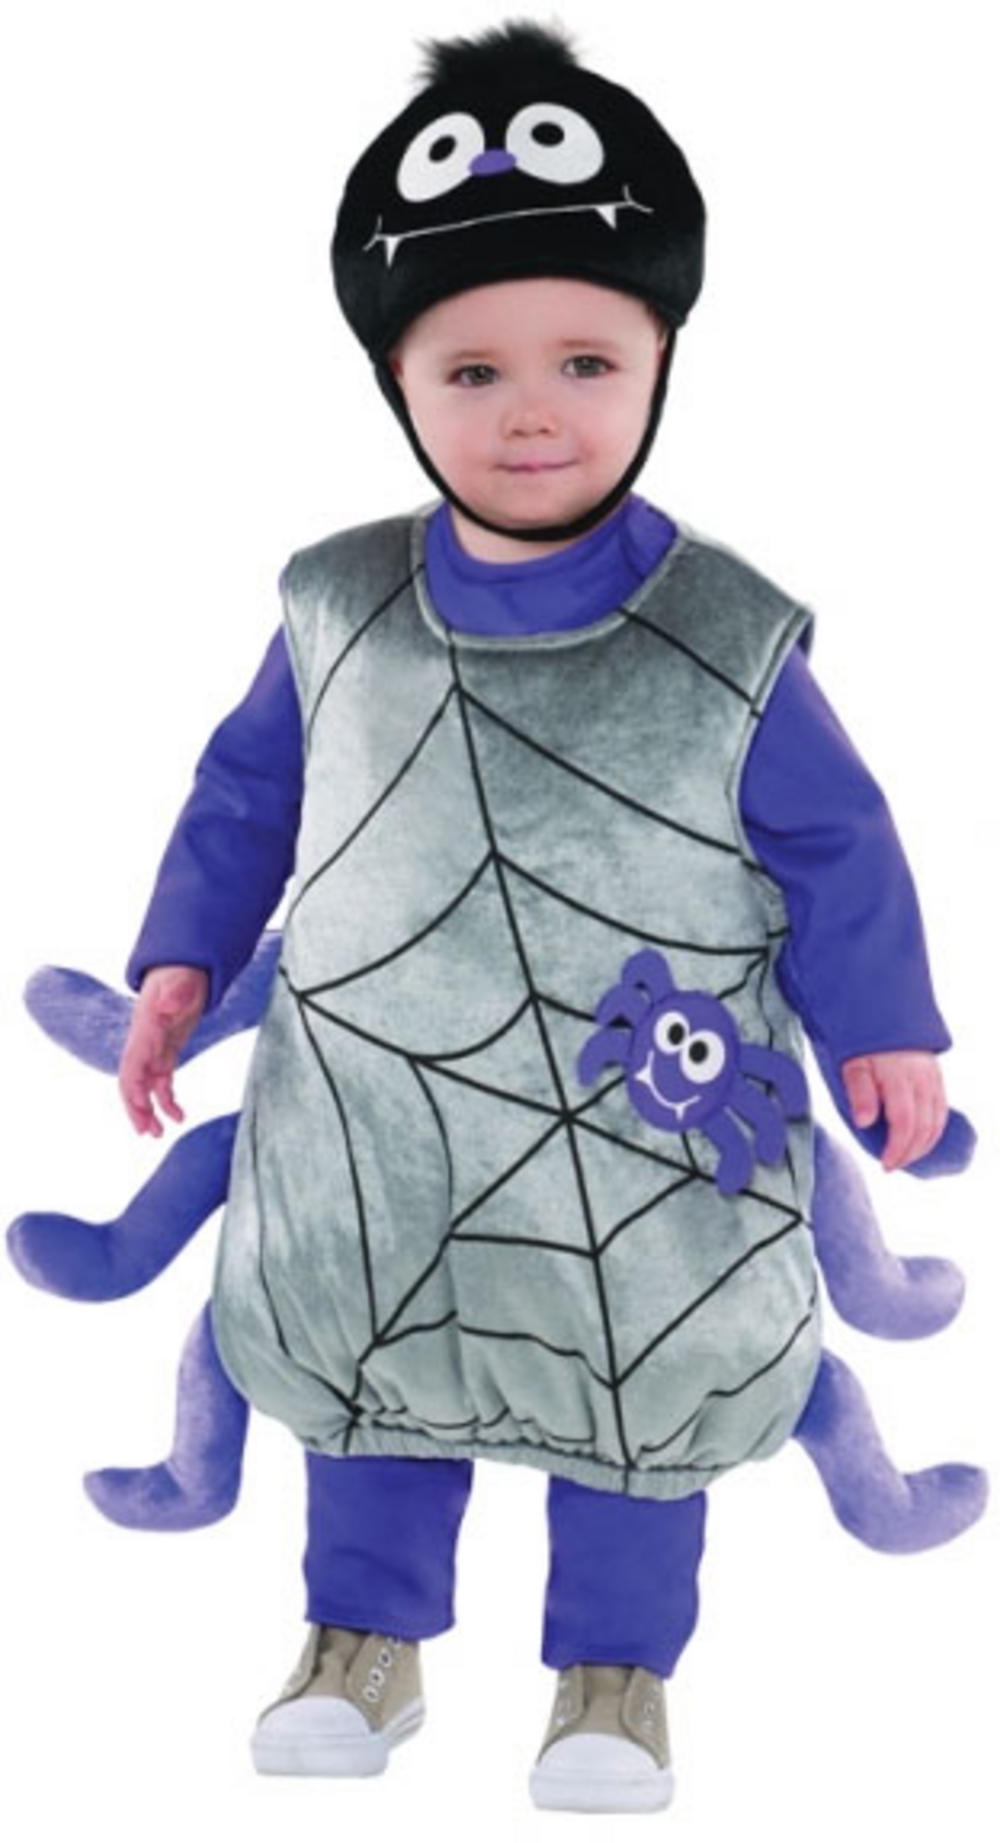 Kids Itsy Bitsy Spider Halloween Costume  sc 1 st  Mega Fancy Dress & Kids Itsy Bitsy Spider Halloween Costume | All Halloween | Mega ...